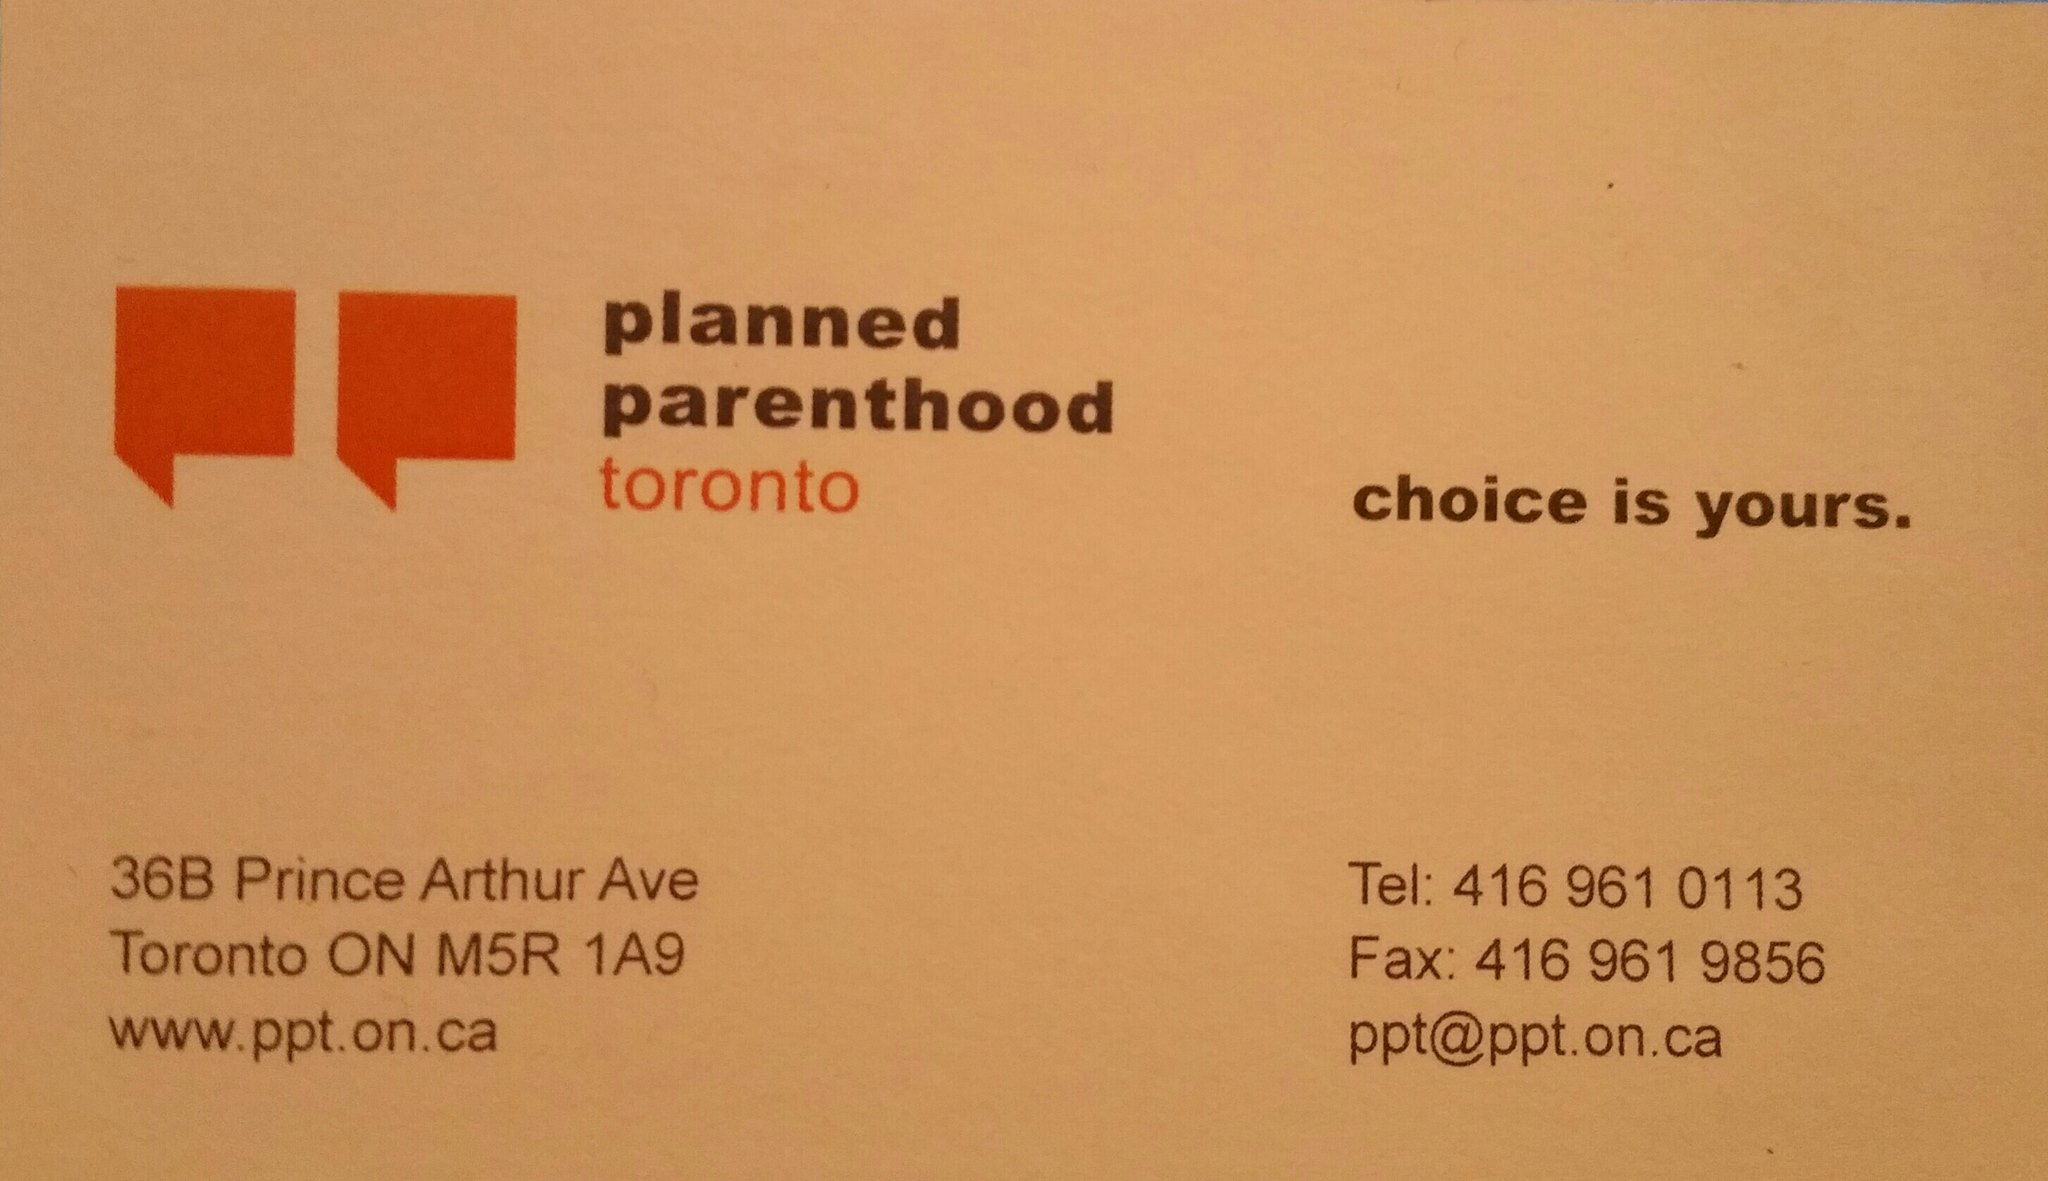 Planned Parenthood business card